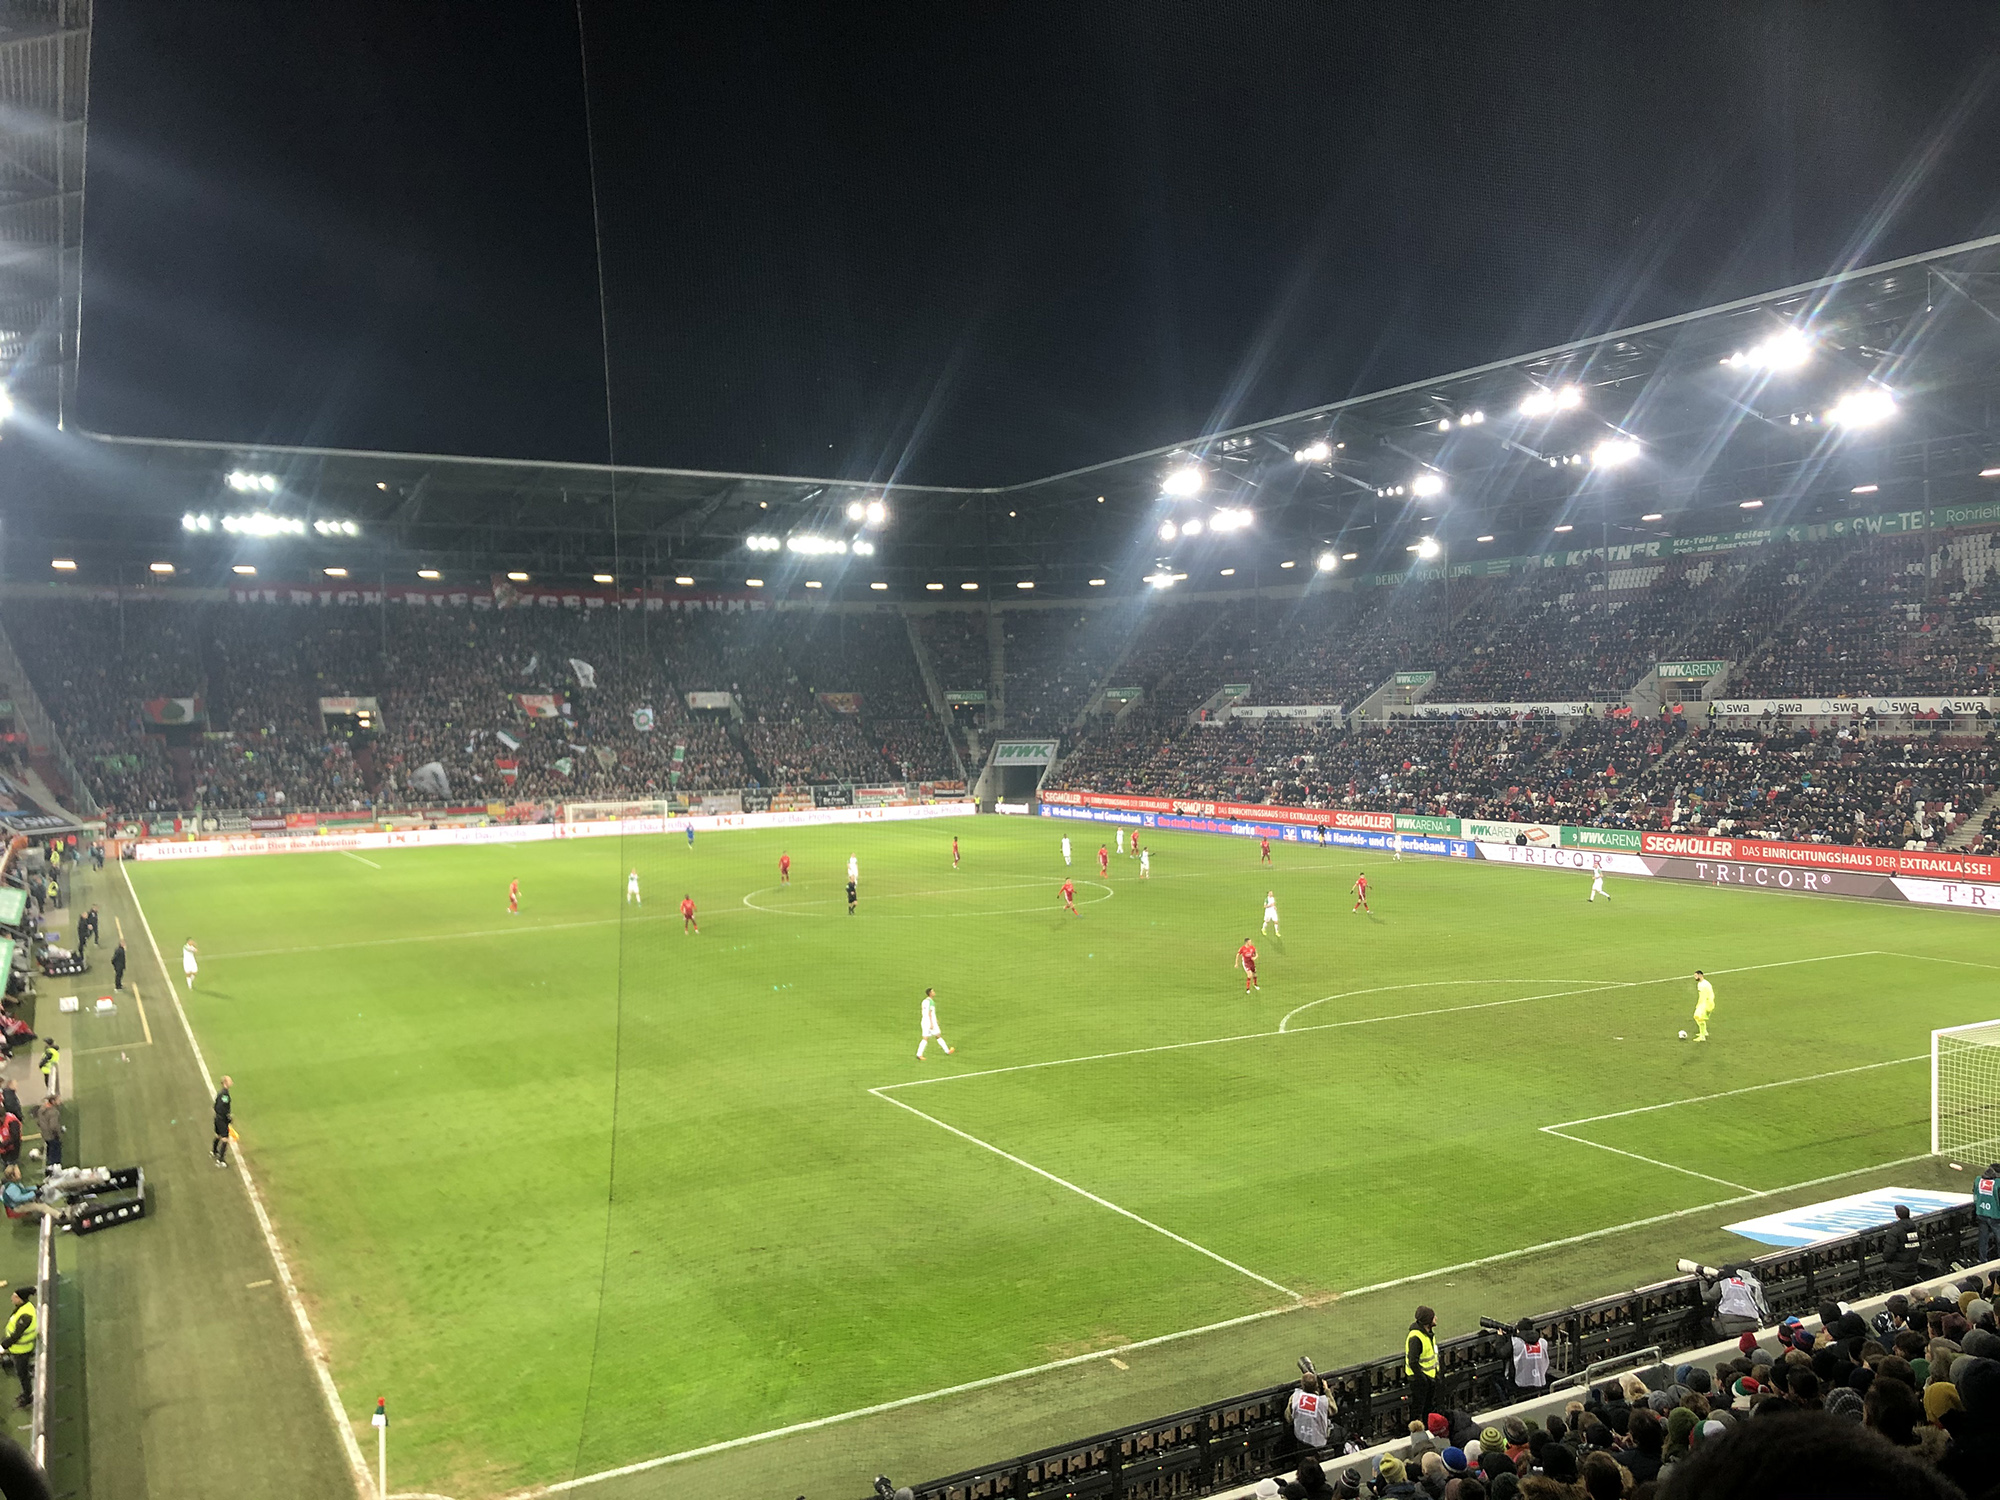 a german football game in a stadium.